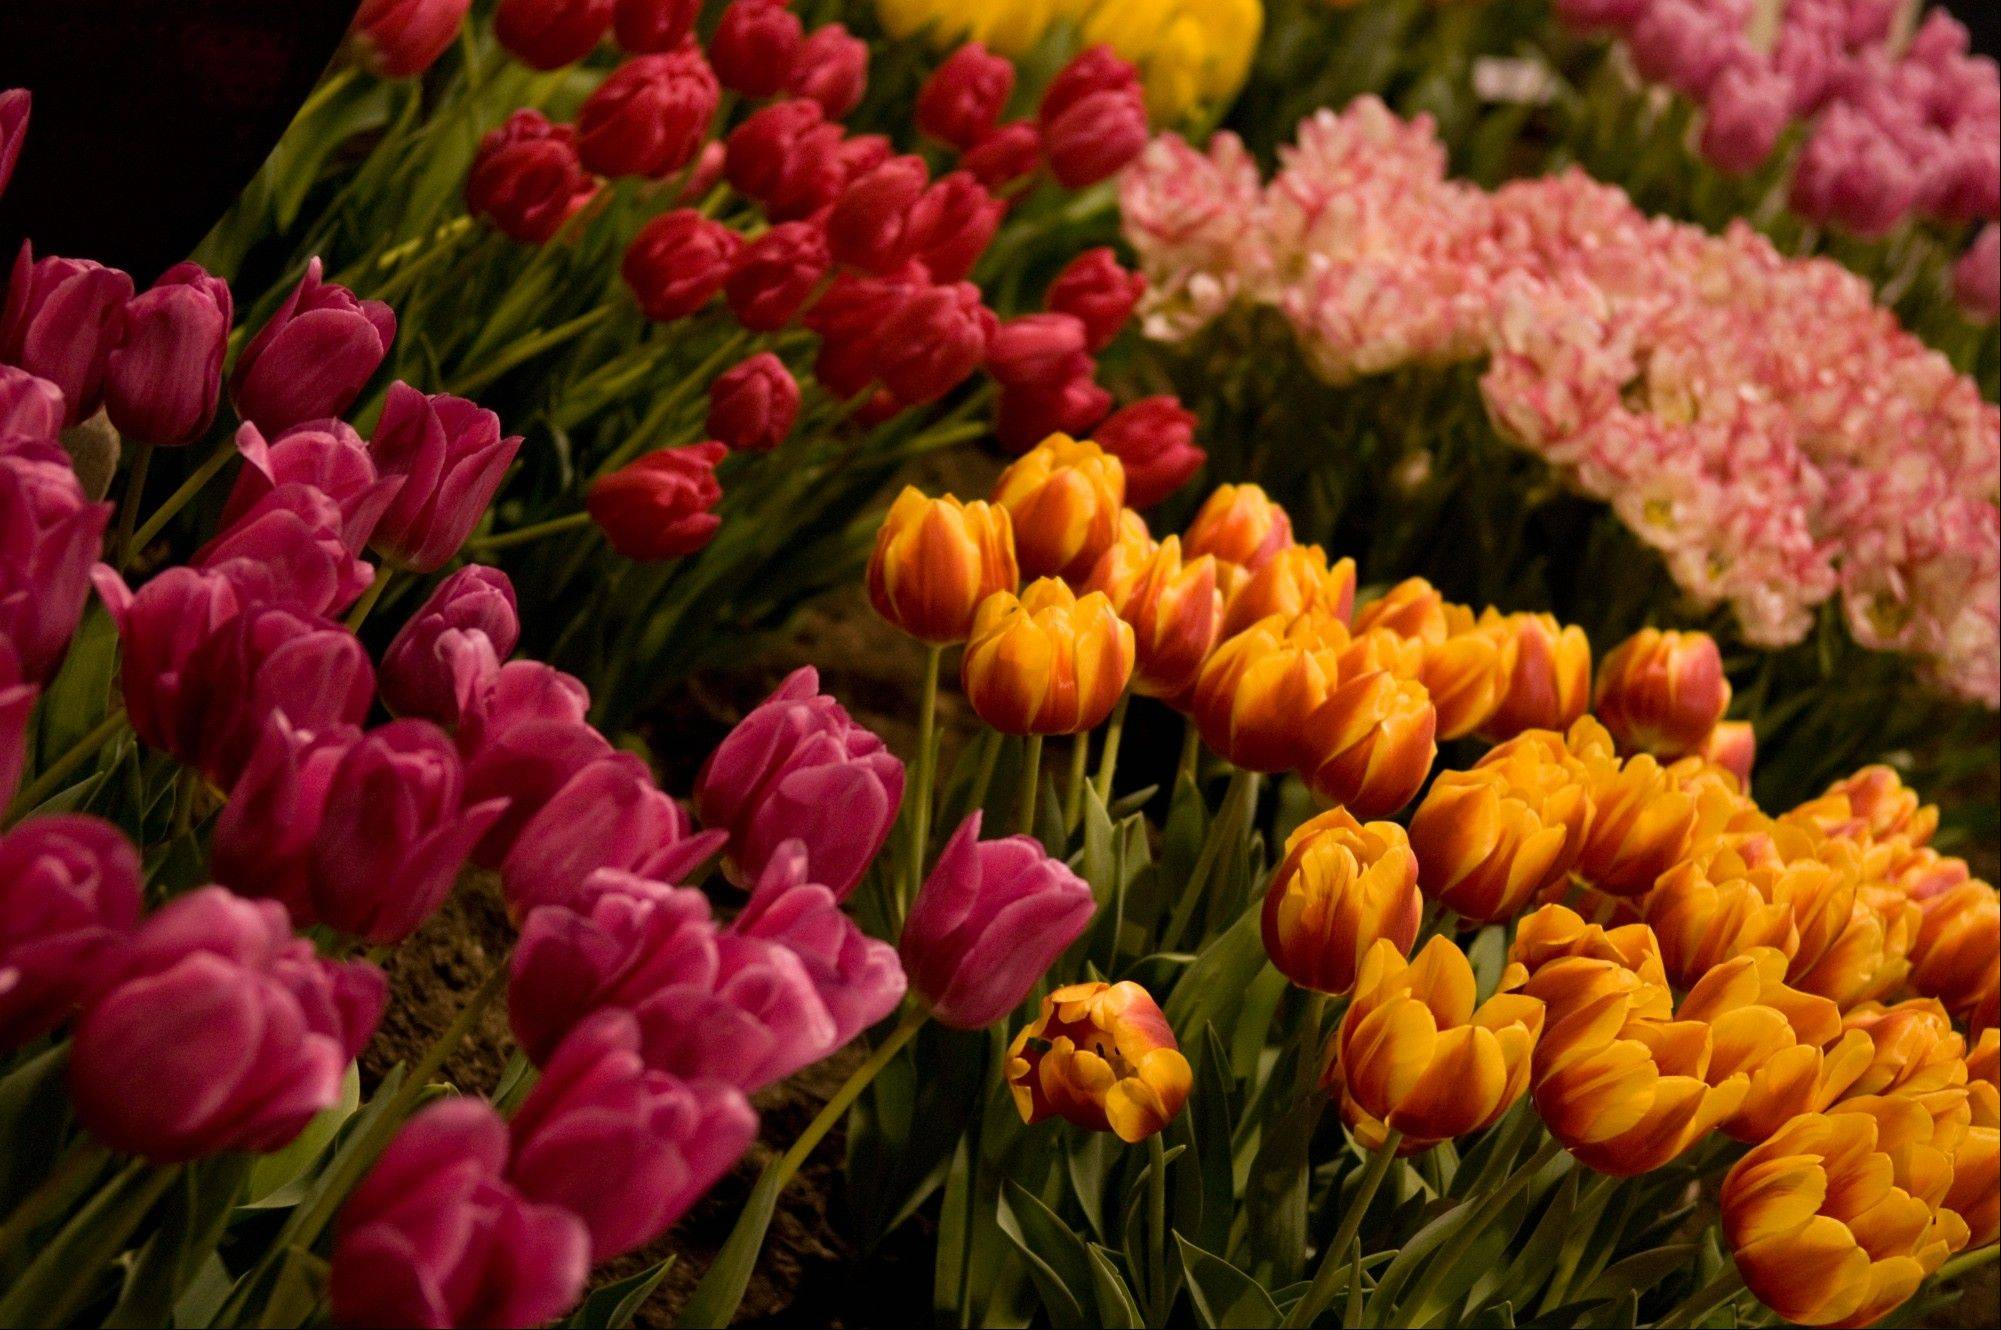 The Chicago Flower & Garden Show returns to Navy Pier in Chicago.